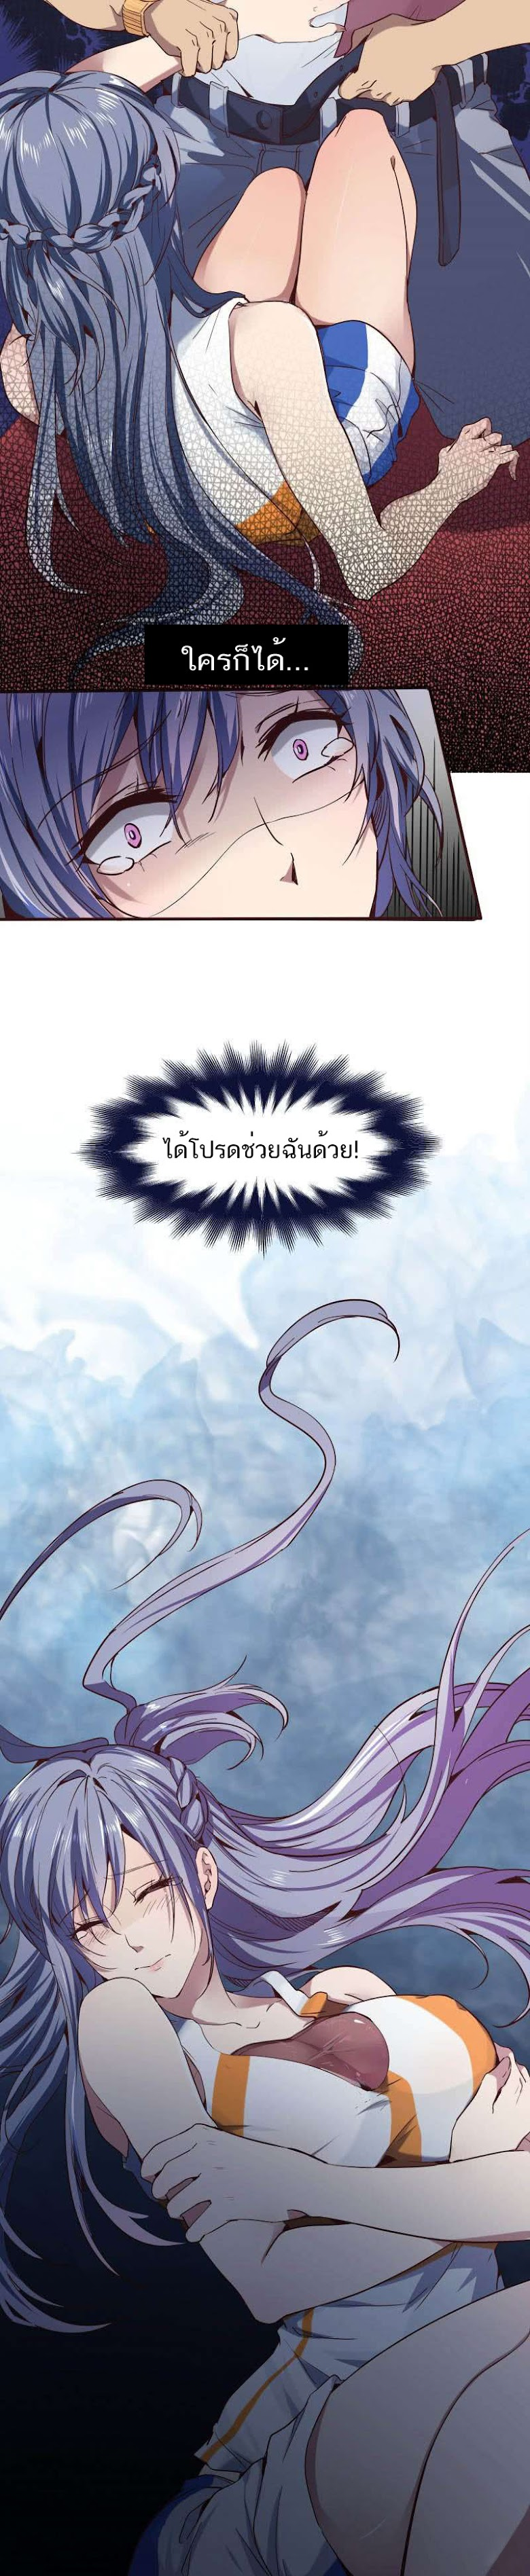 First Rate Master - หน้า 13